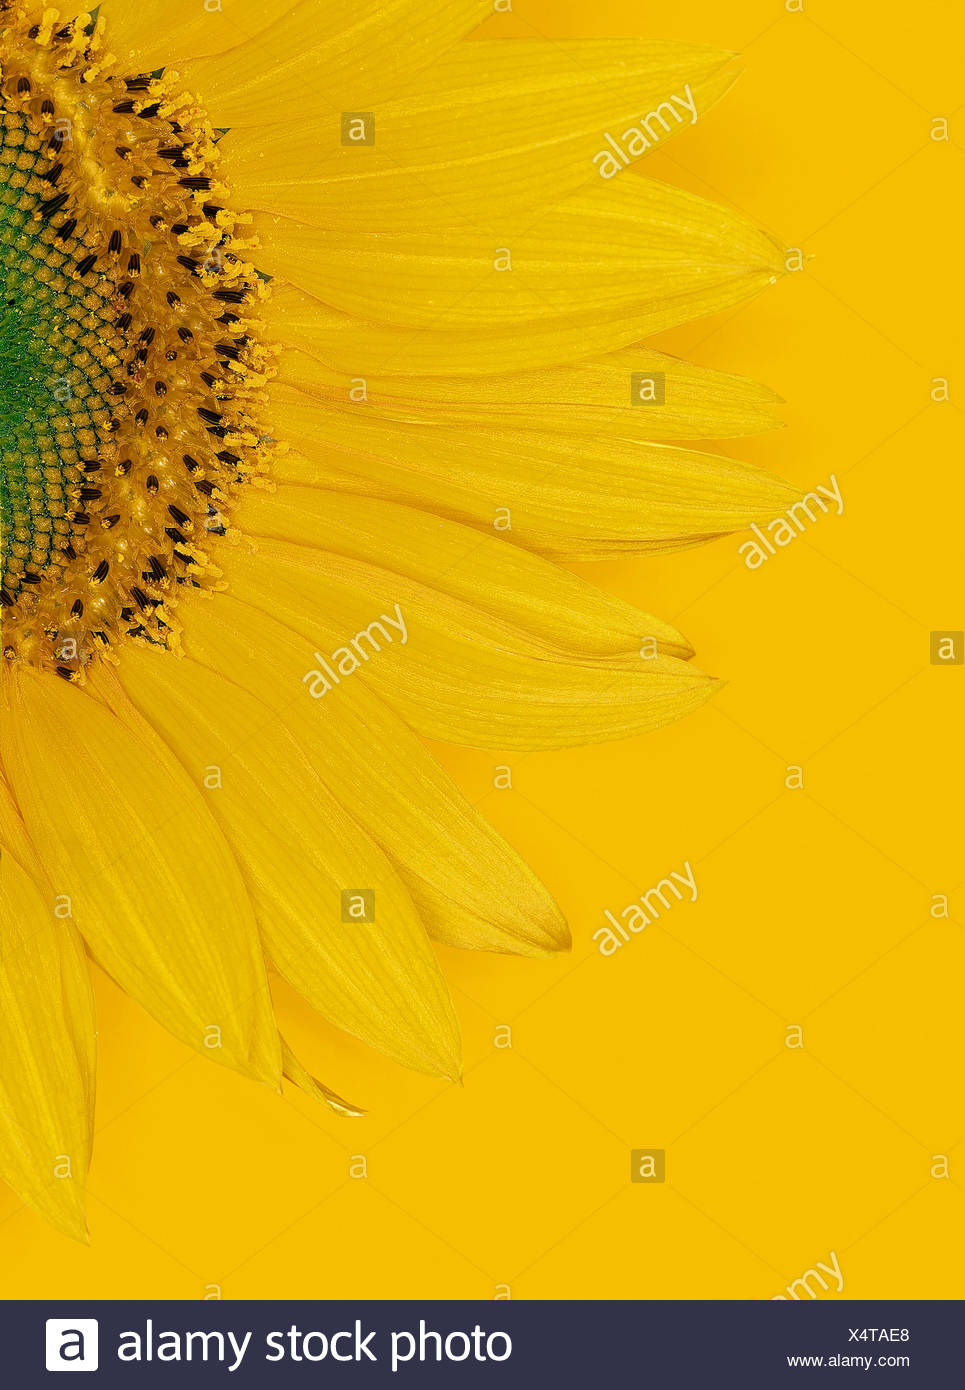 A sunflower against a yellow background - Stock Image